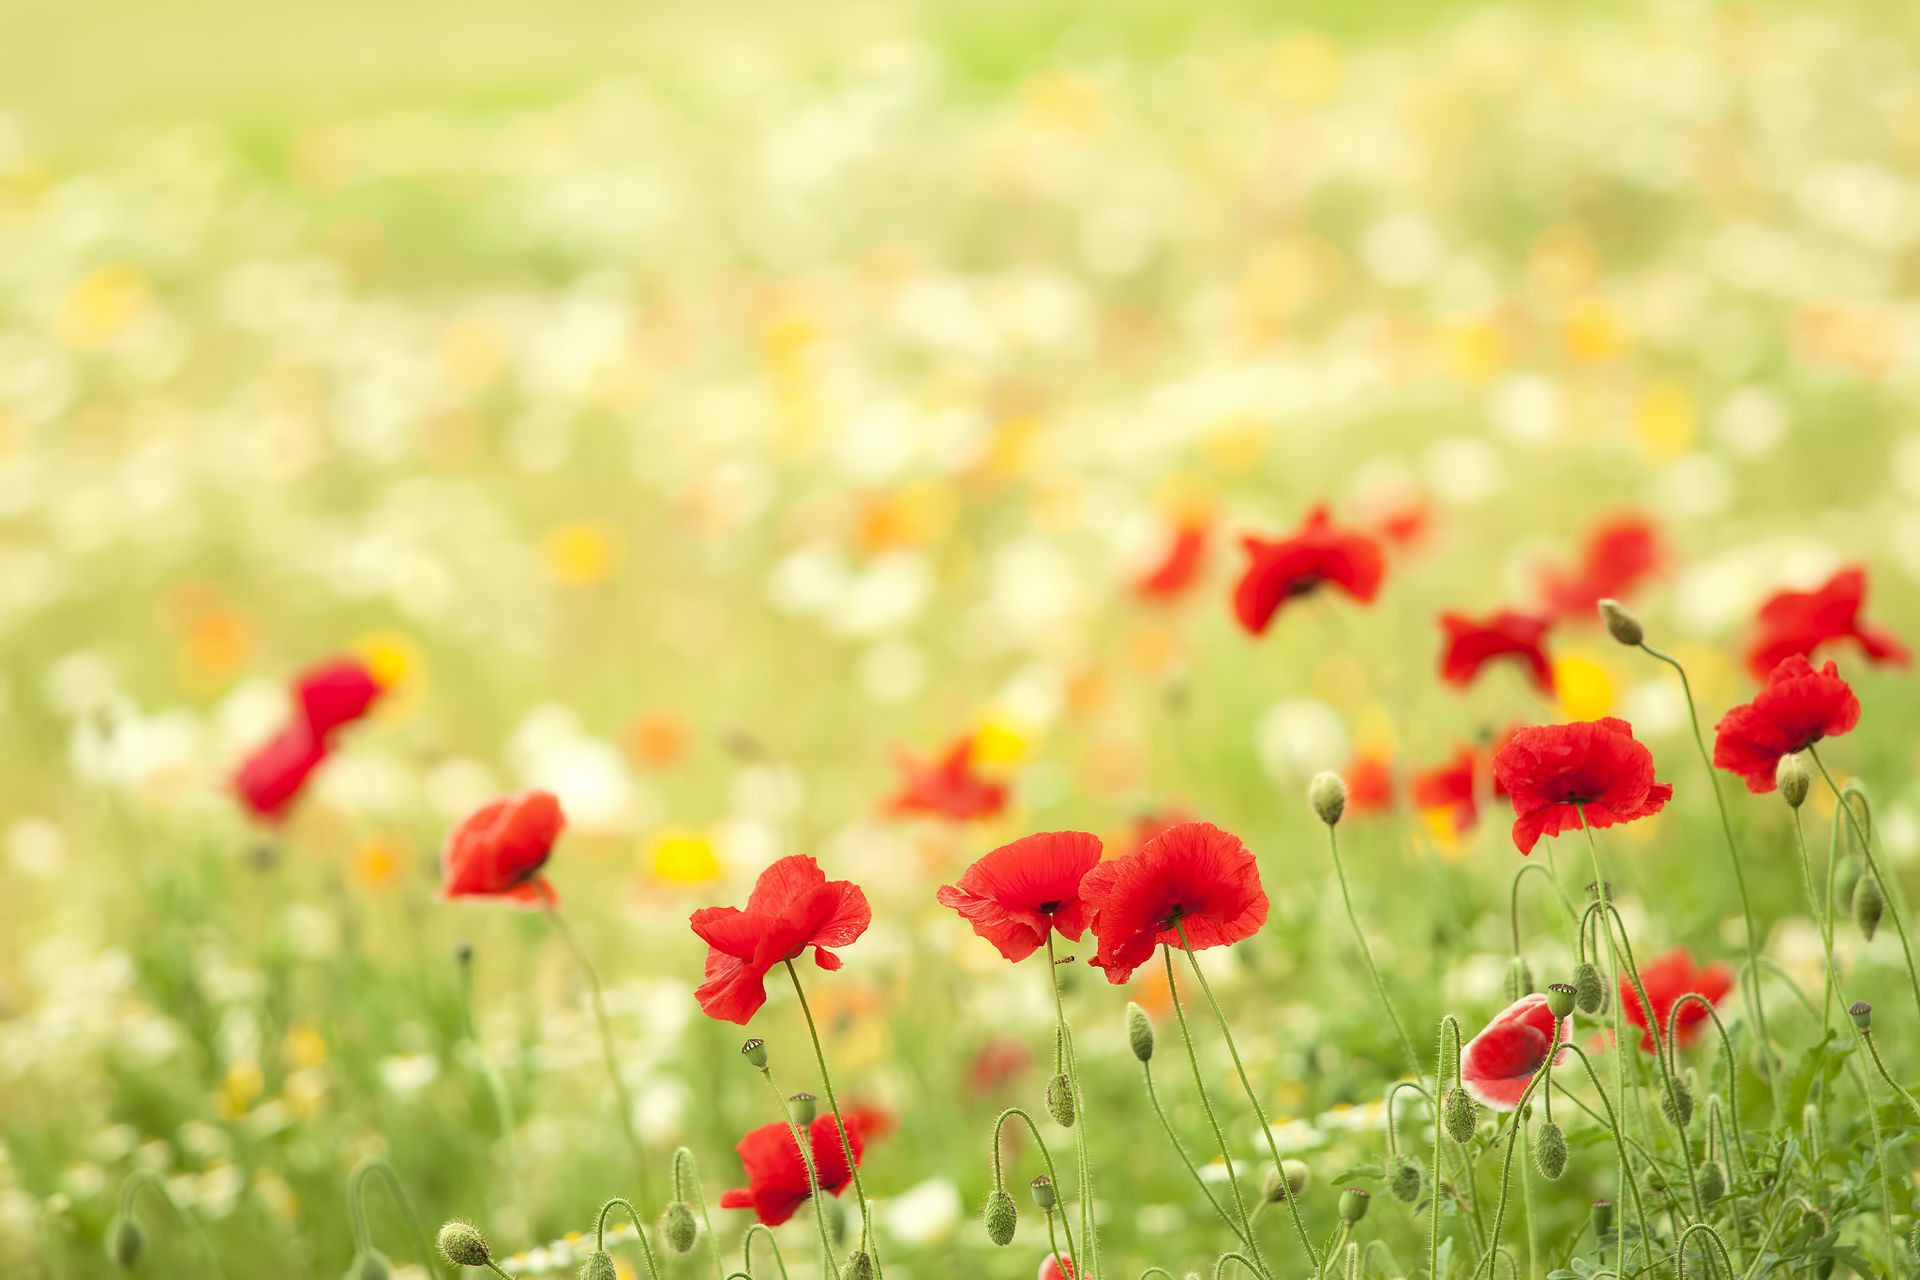 Poppies Bokeh Meadow Summer Nature Flowers